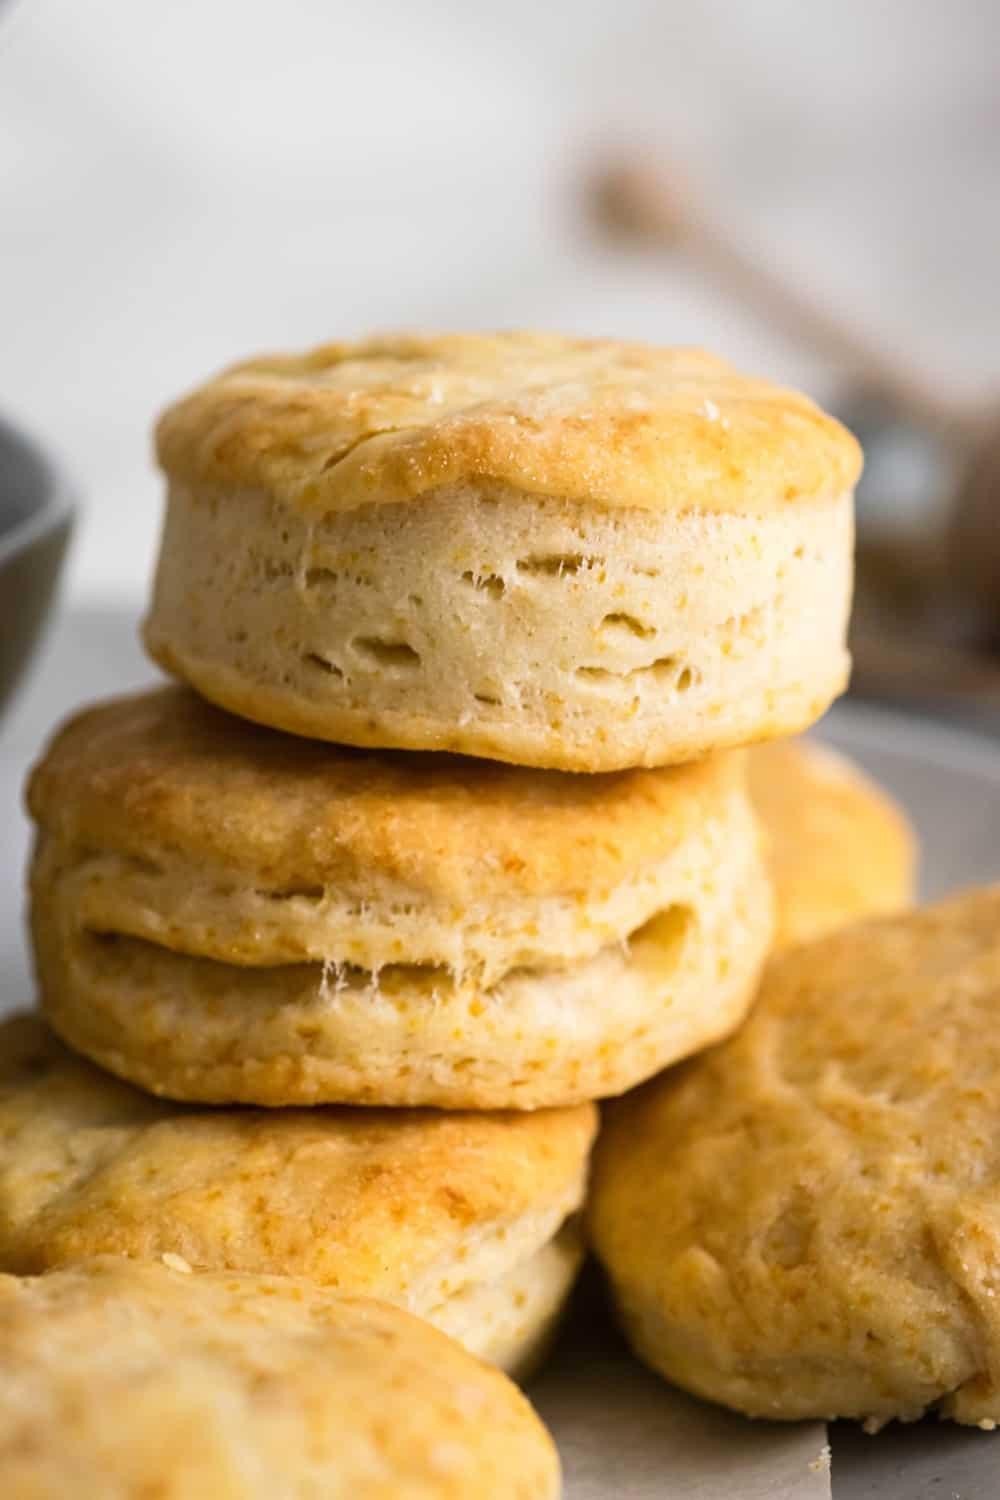 Two biscuits stacked on top of a few other biscuits.